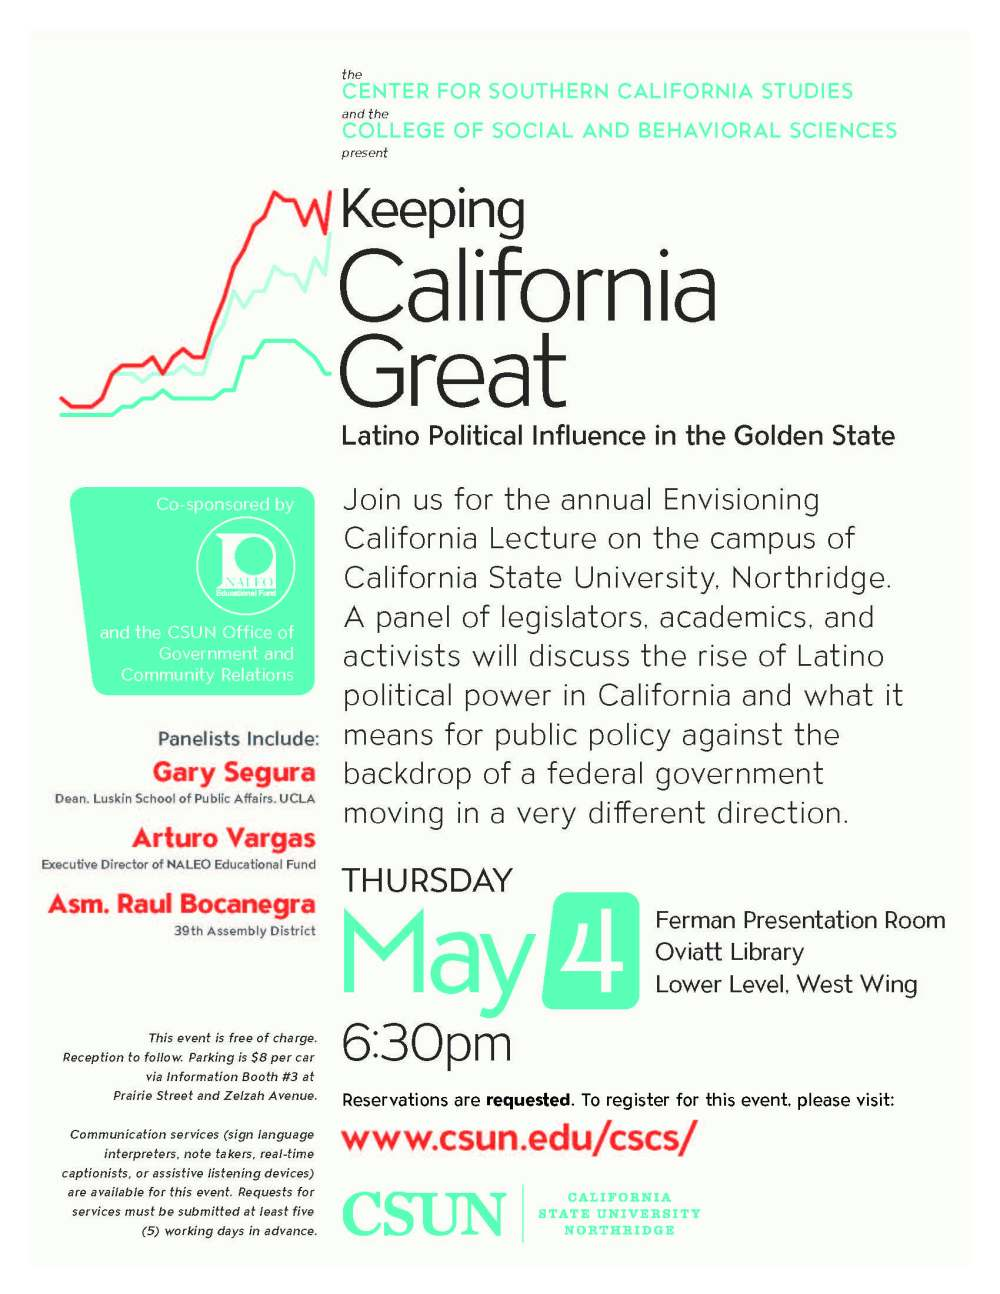 Keeping California Great - Flyer